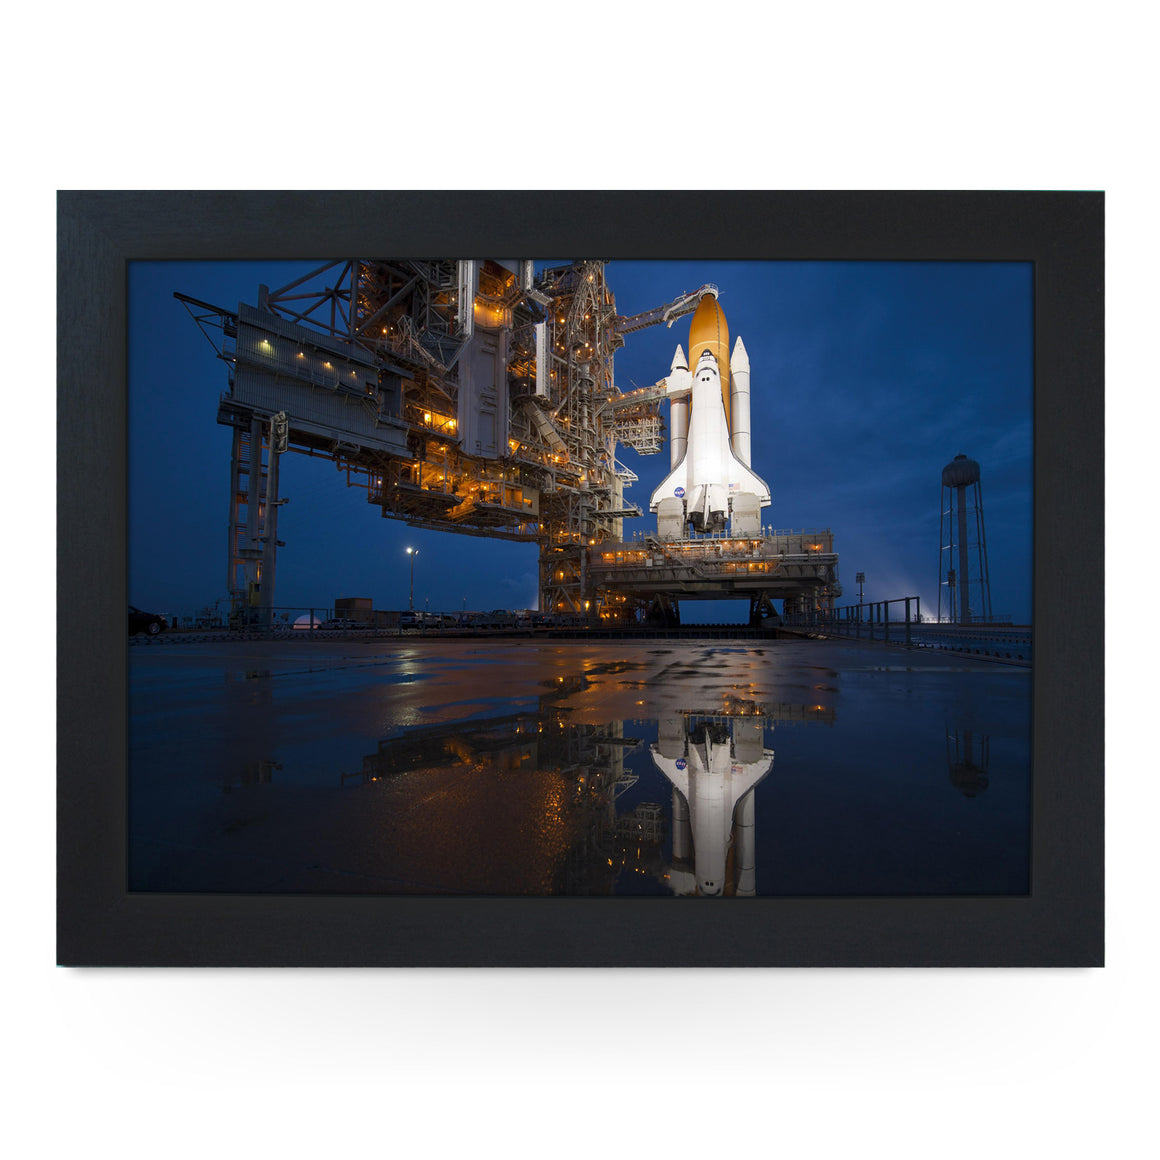 Rocket Launch Site Lap Tray -L0121